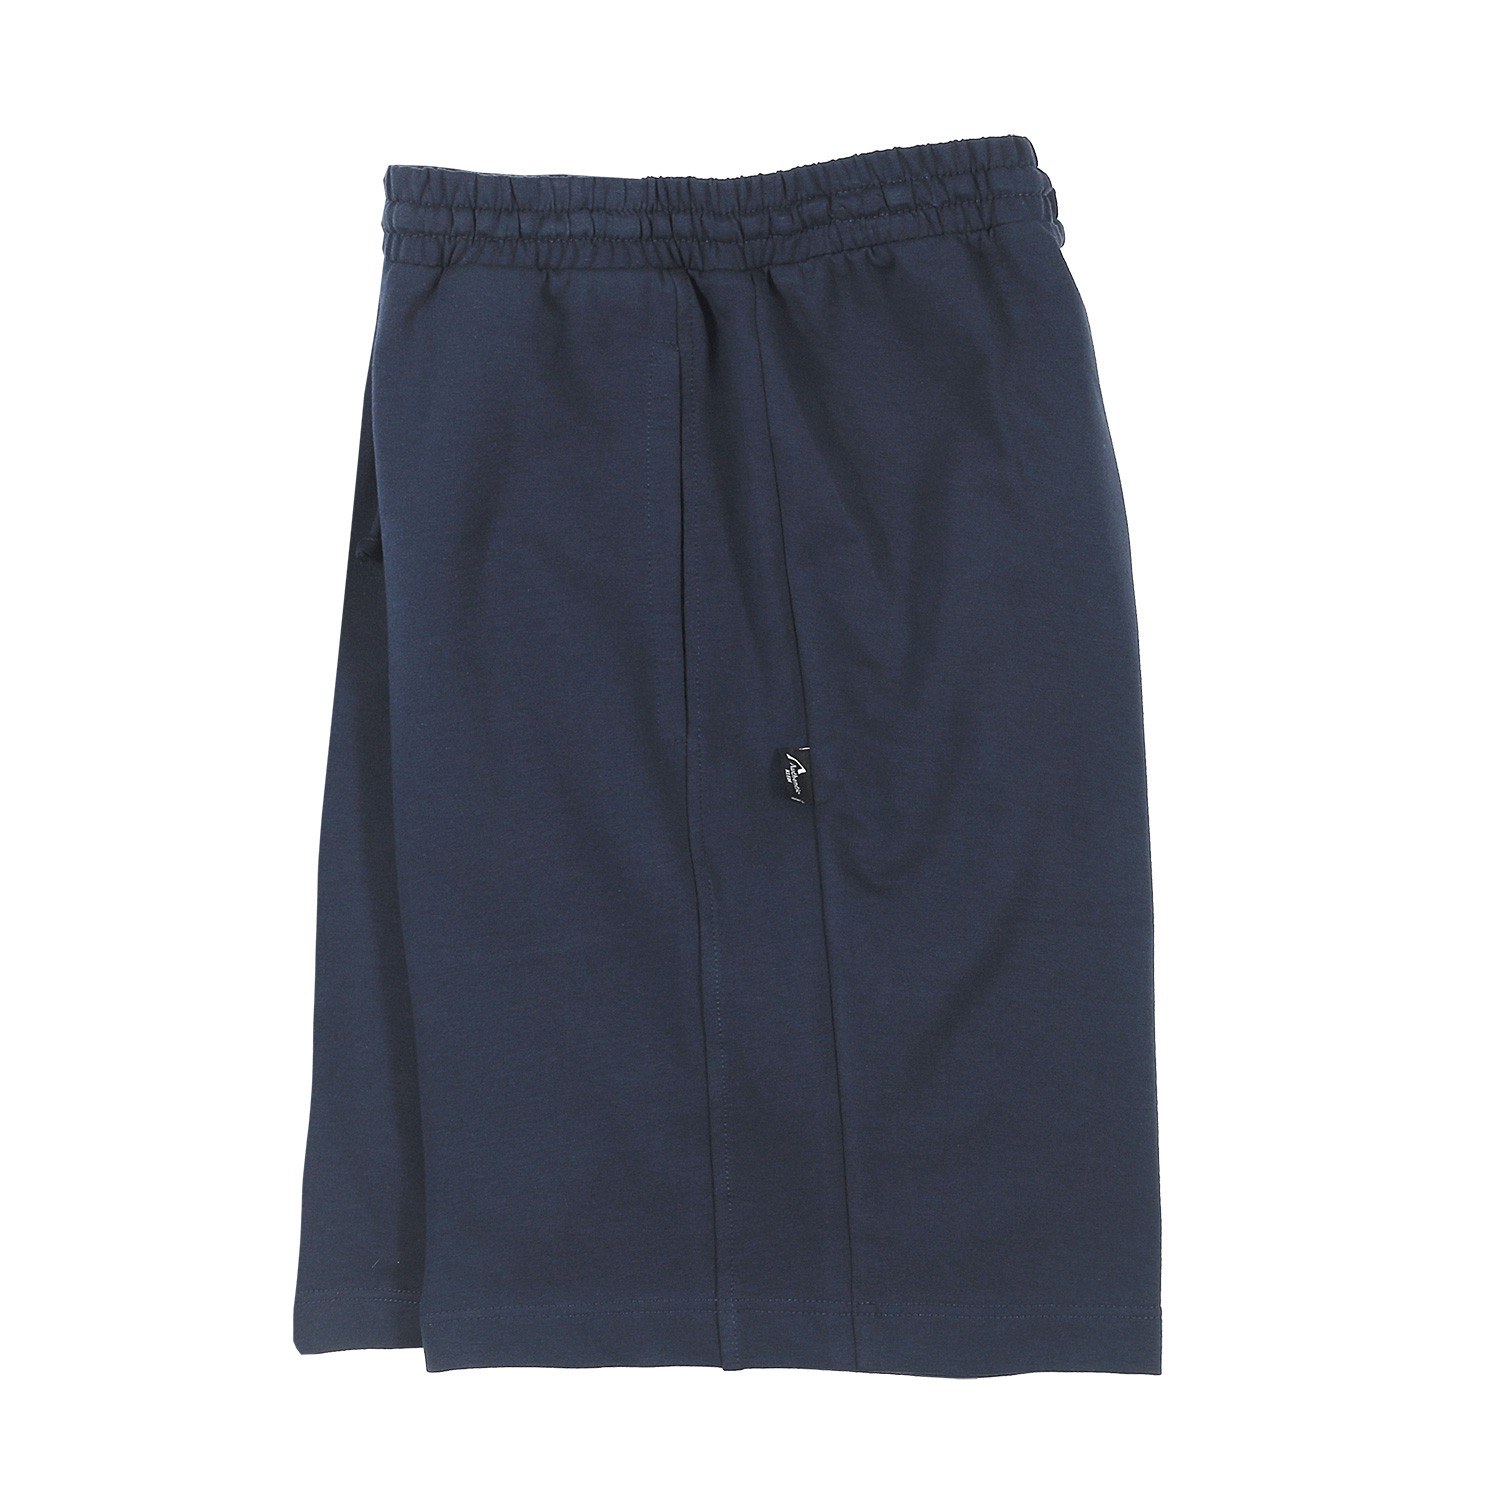 Detail Image to Sports and leisure bermuda in blue, plus sizes by AUTHENTIC KLEIN